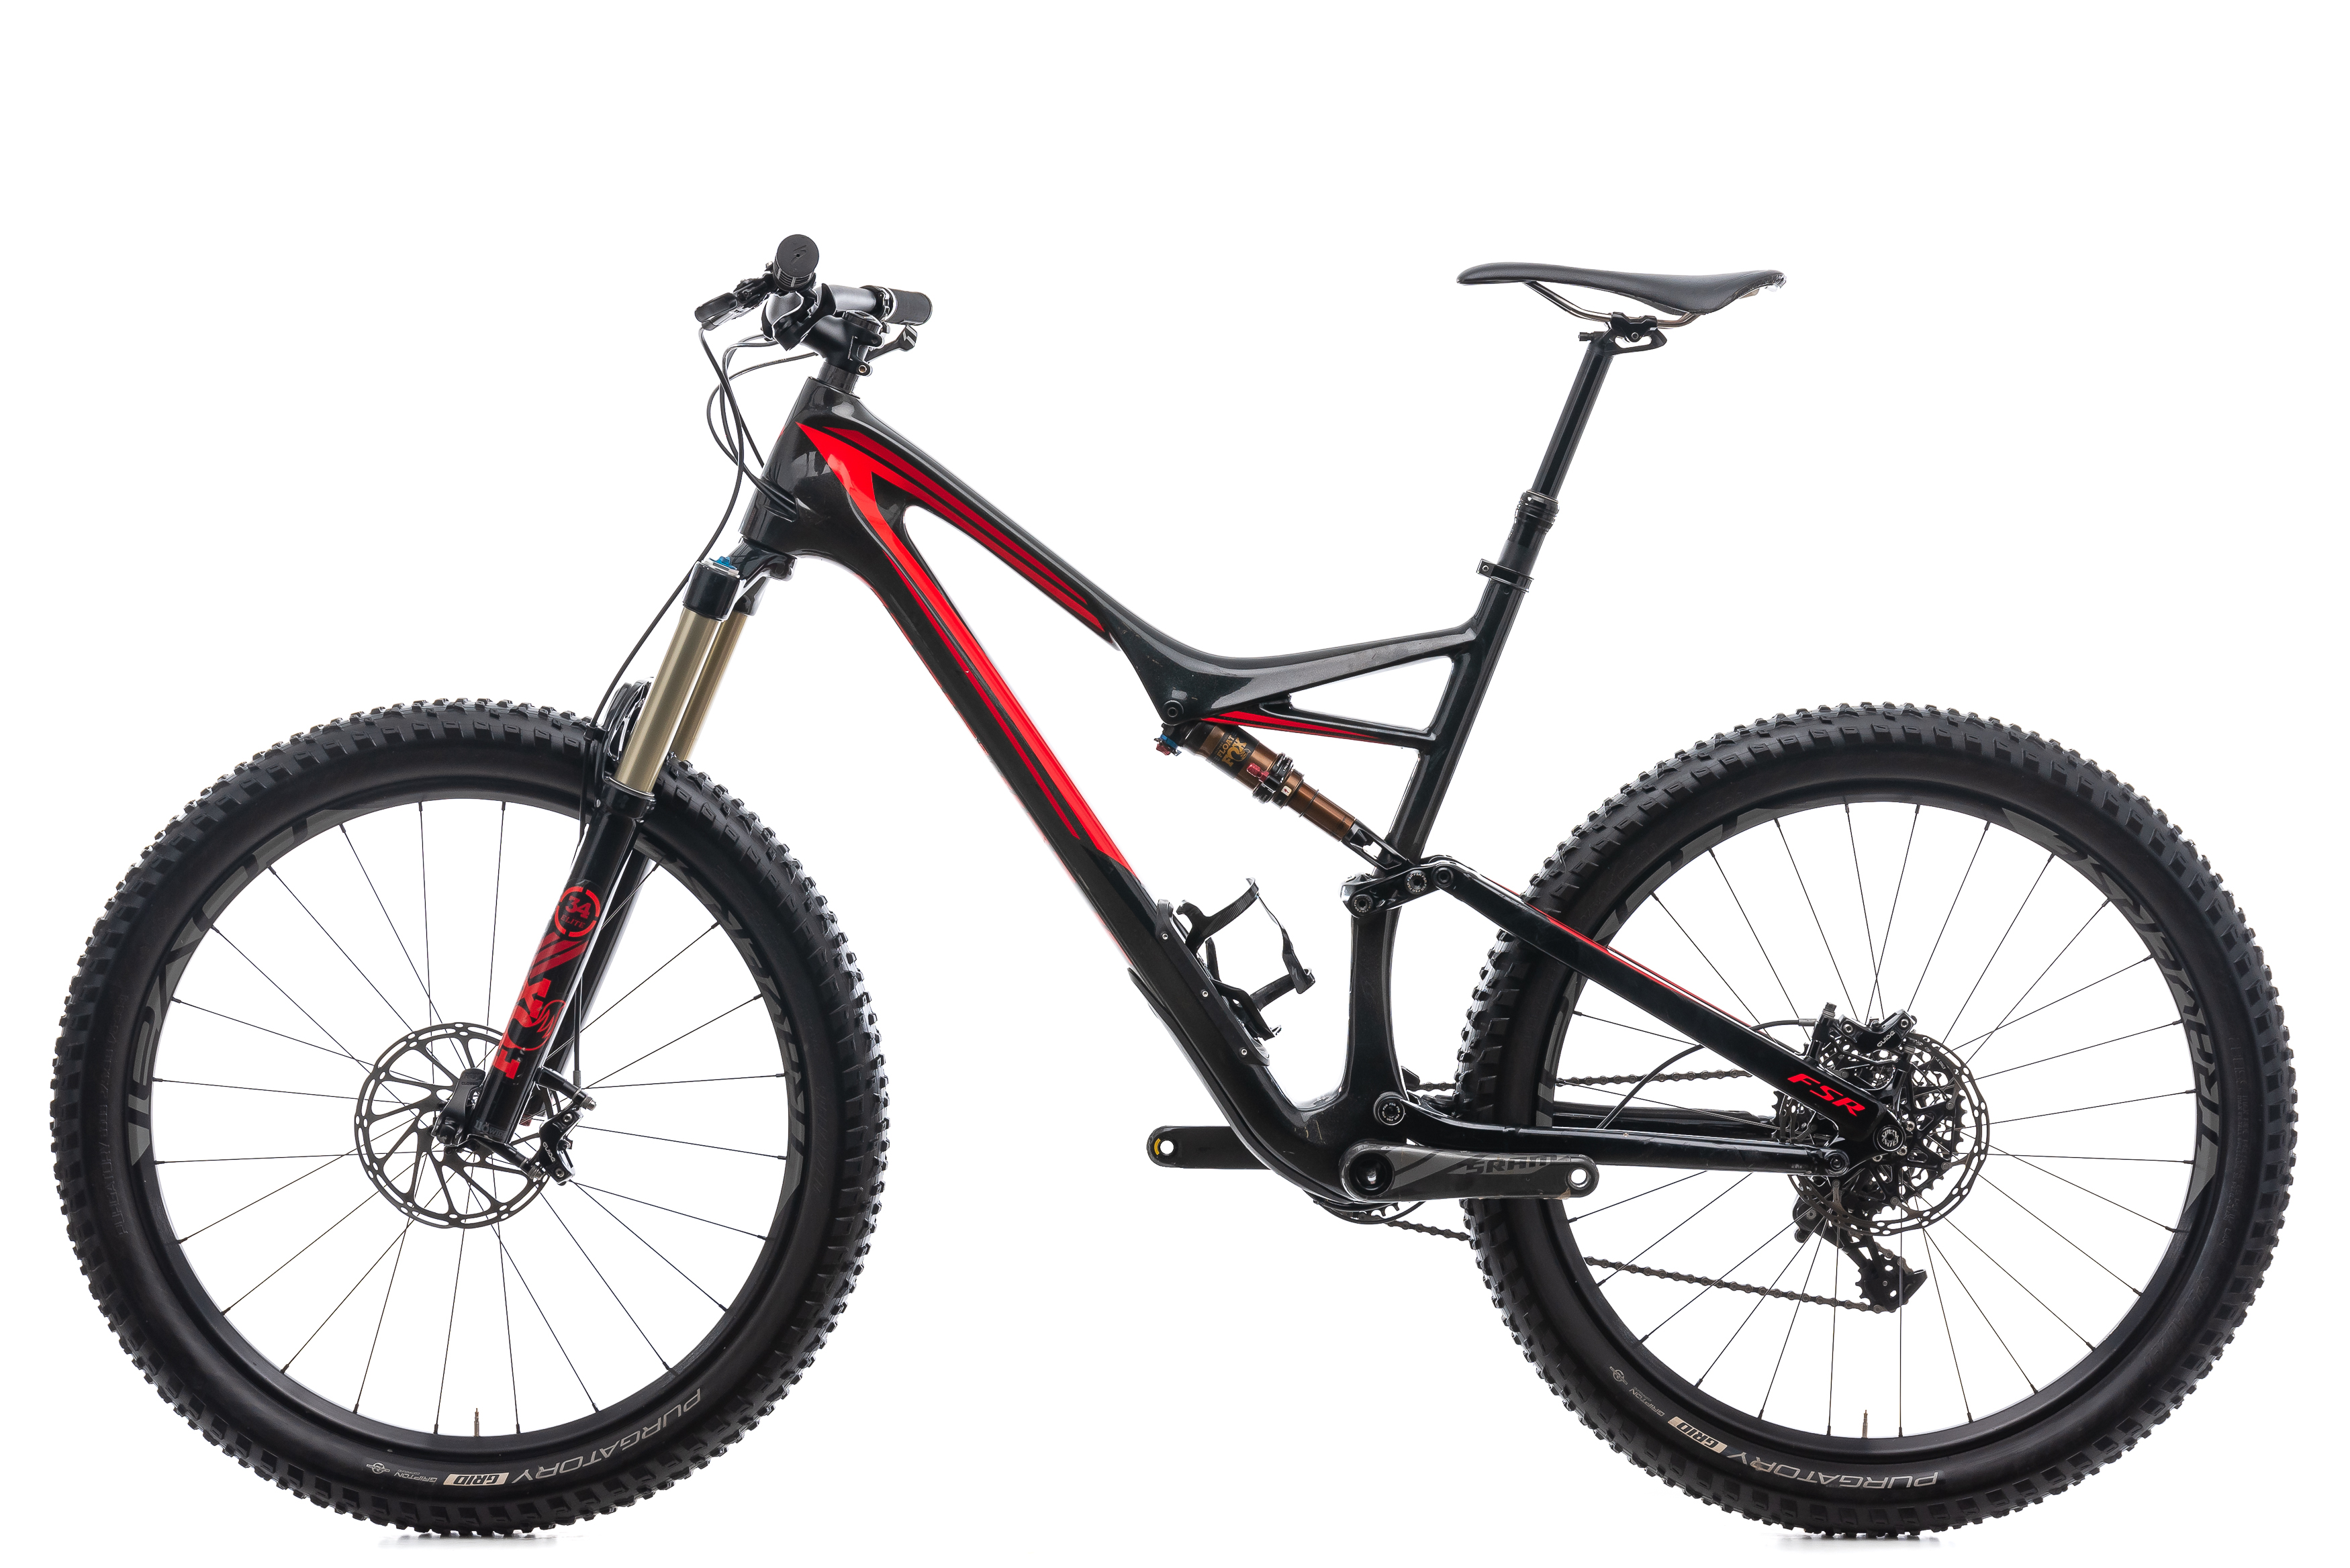 747df947371 2016 Specialized Stumpjumper FSR Expert 6Fattie Mountain Bike X-Large 27.5